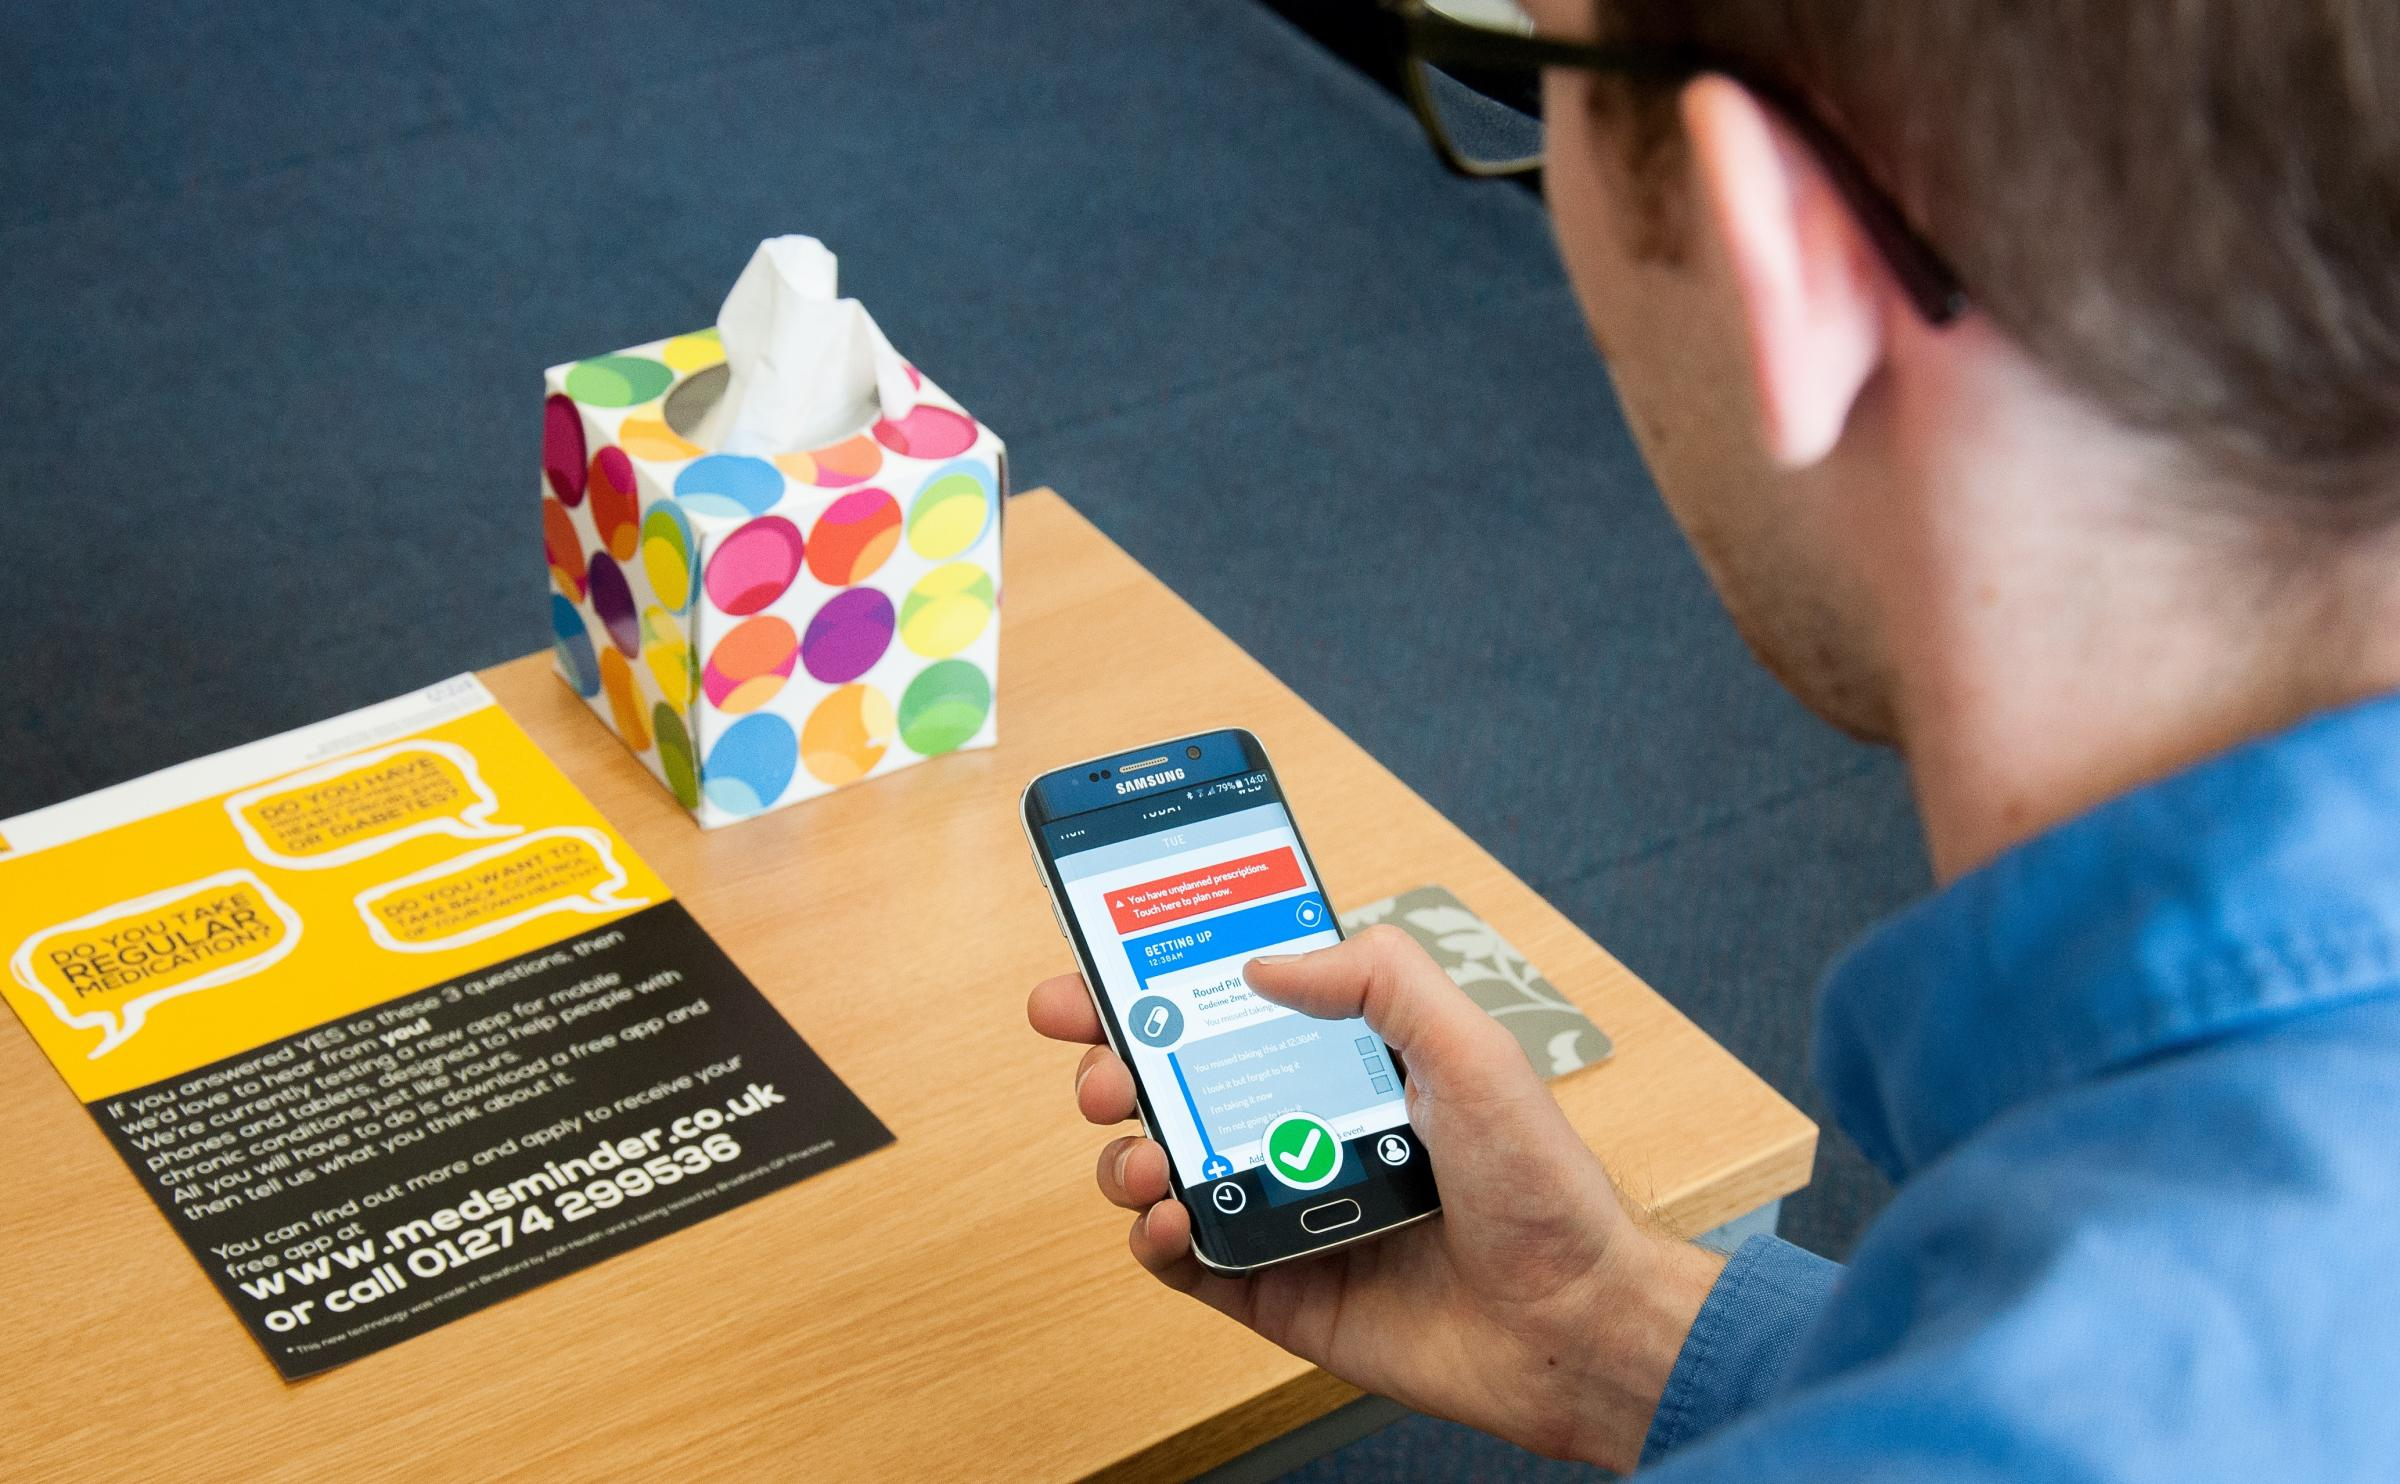 The Medsminder mobile phone app developed by the Advanced Digital Institute